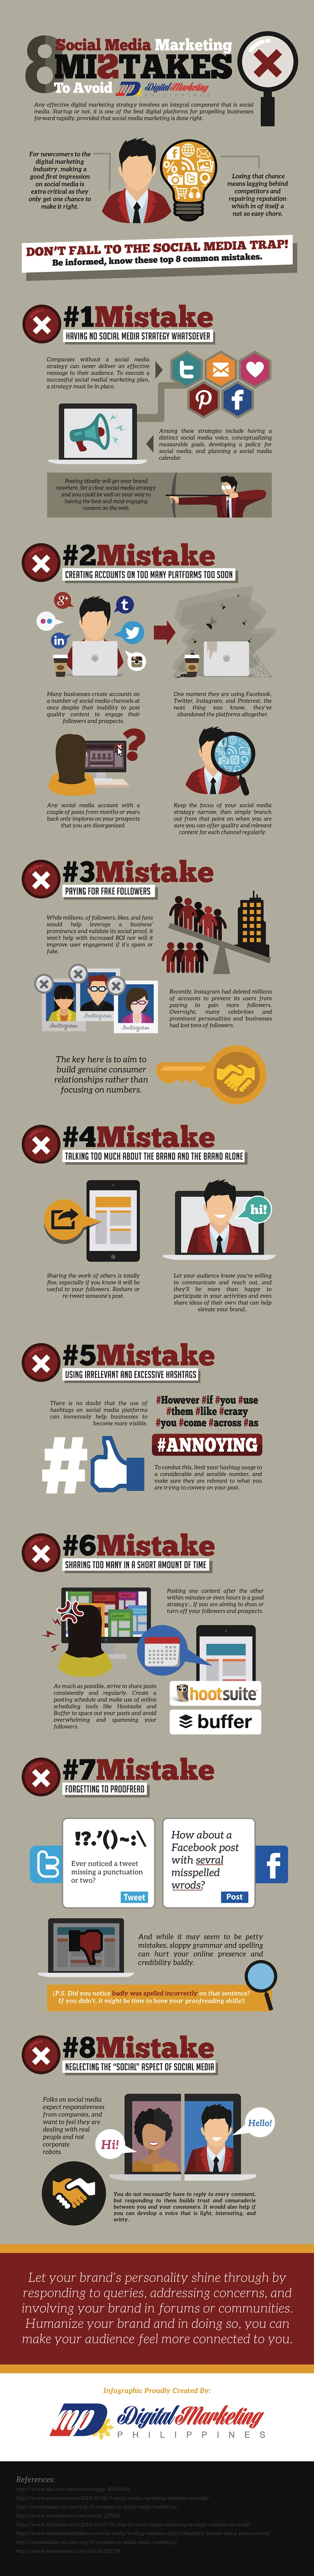 8-Social-Media-Marketing-Mistakes-to-Avoid